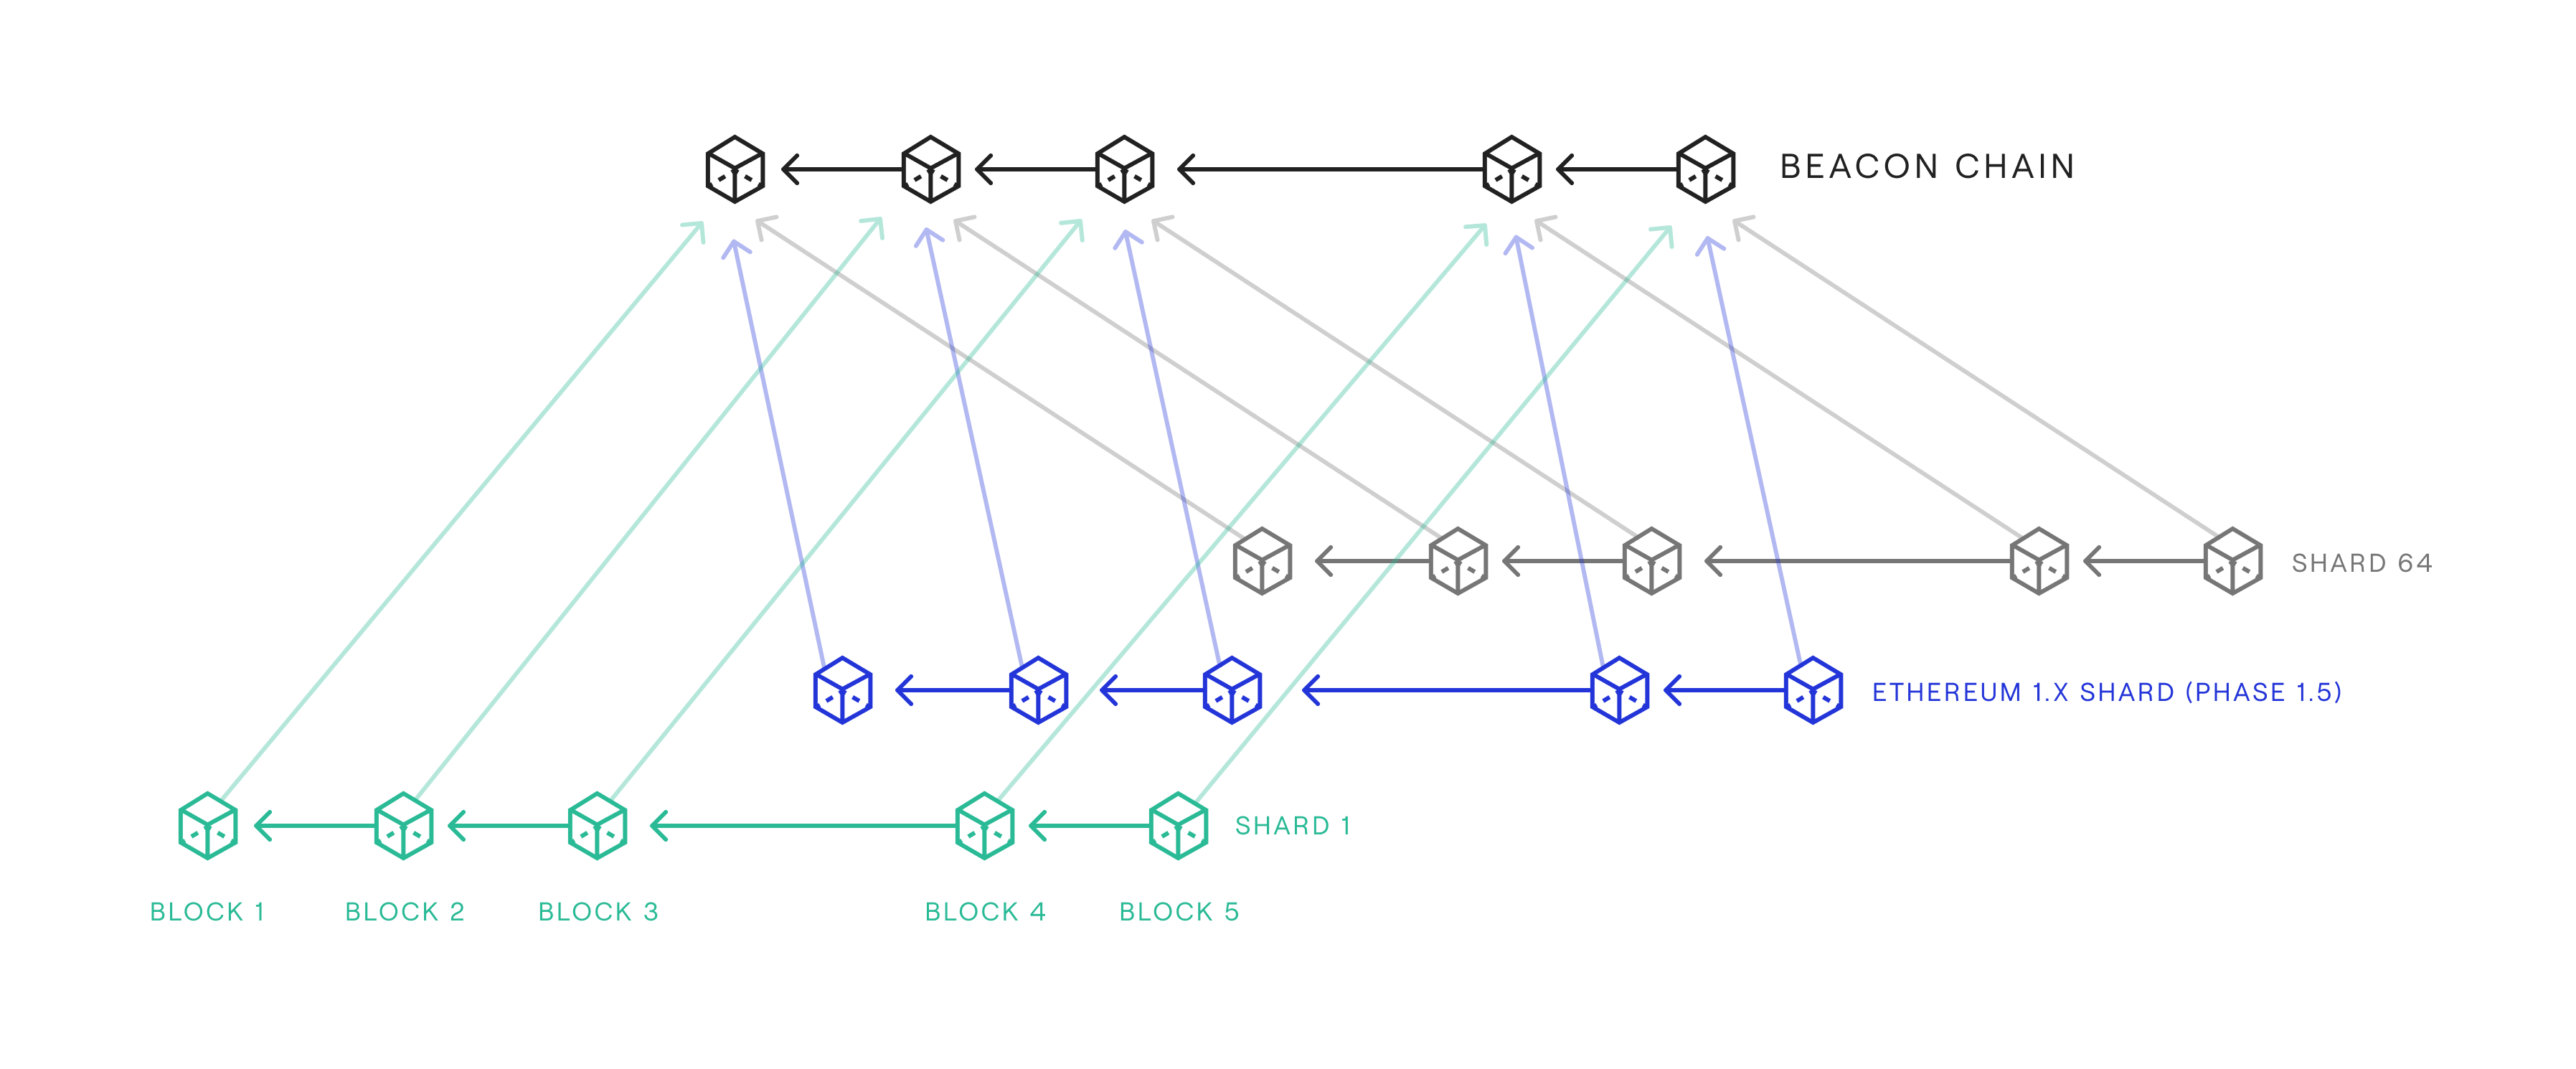 Overview of Eth2 parallel chain architecture